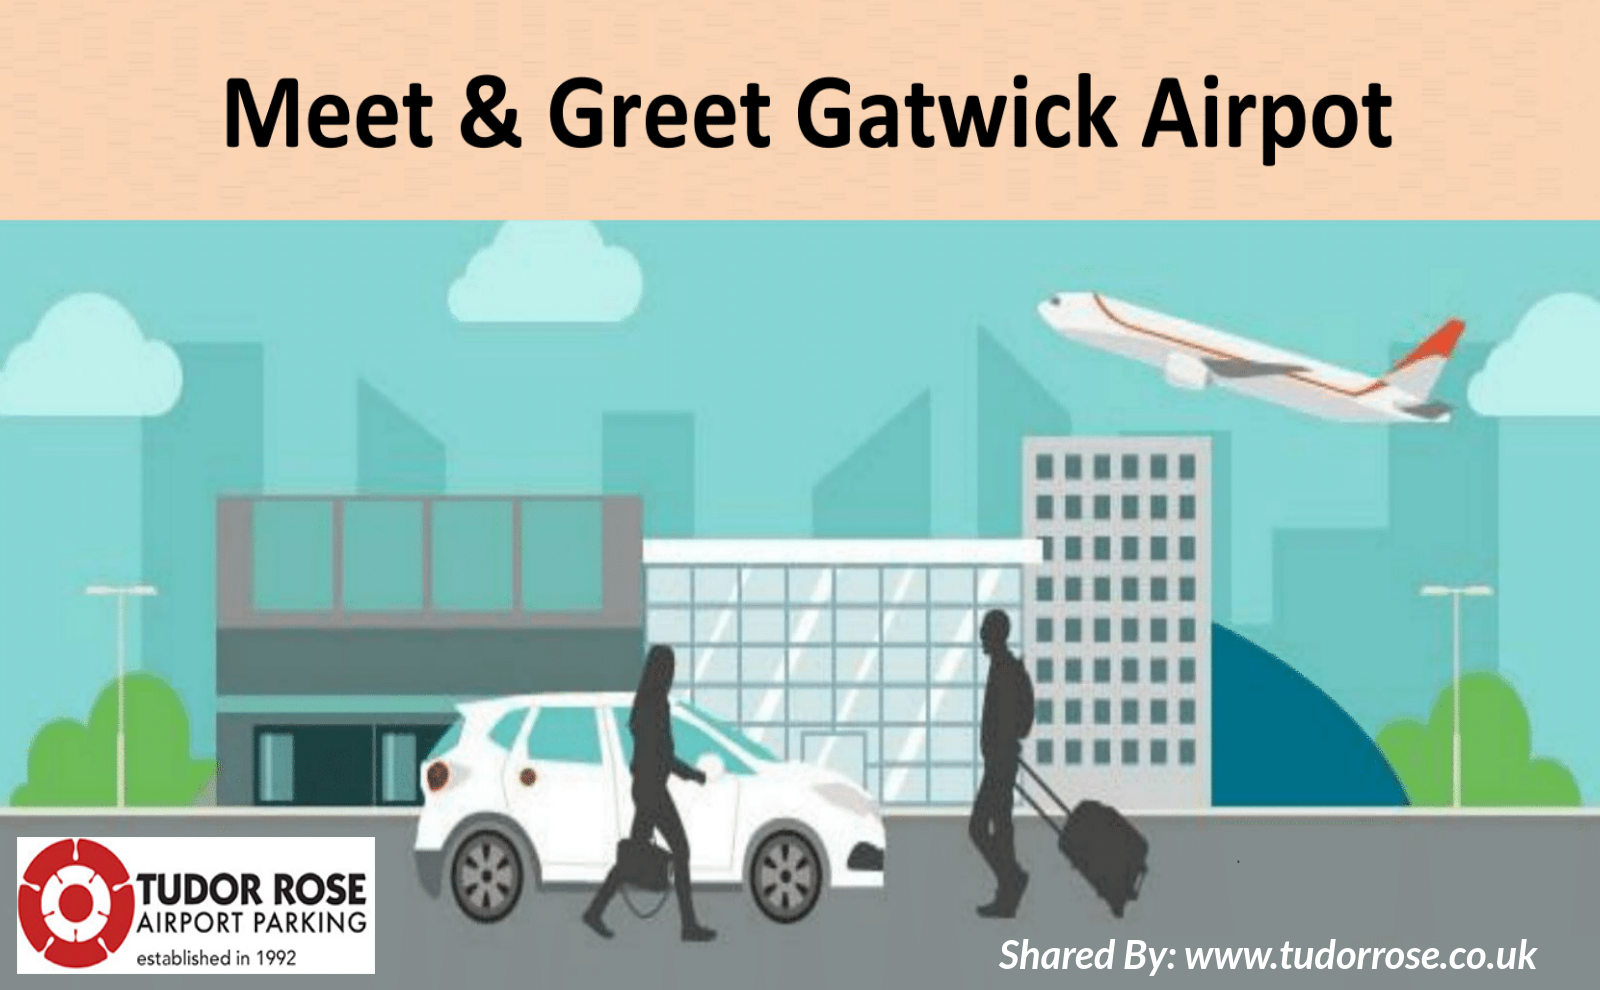 See More At Tudorrose Car Parking Gatwick Airport